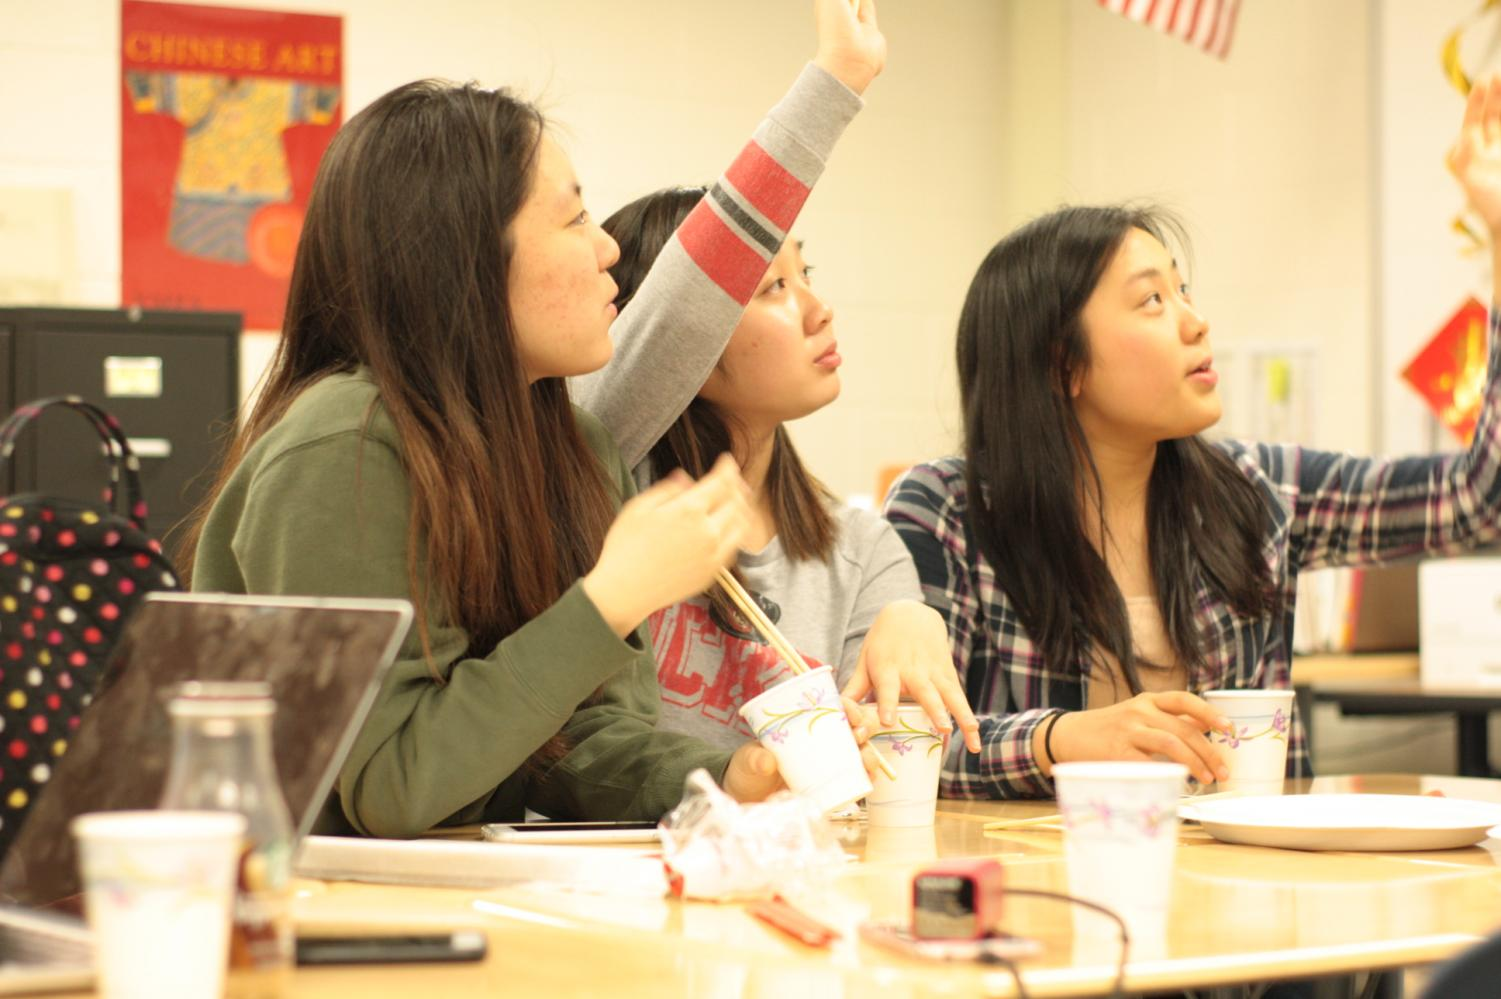 Students+call+out+answers+to+the+Chinese+themed+pictionary.